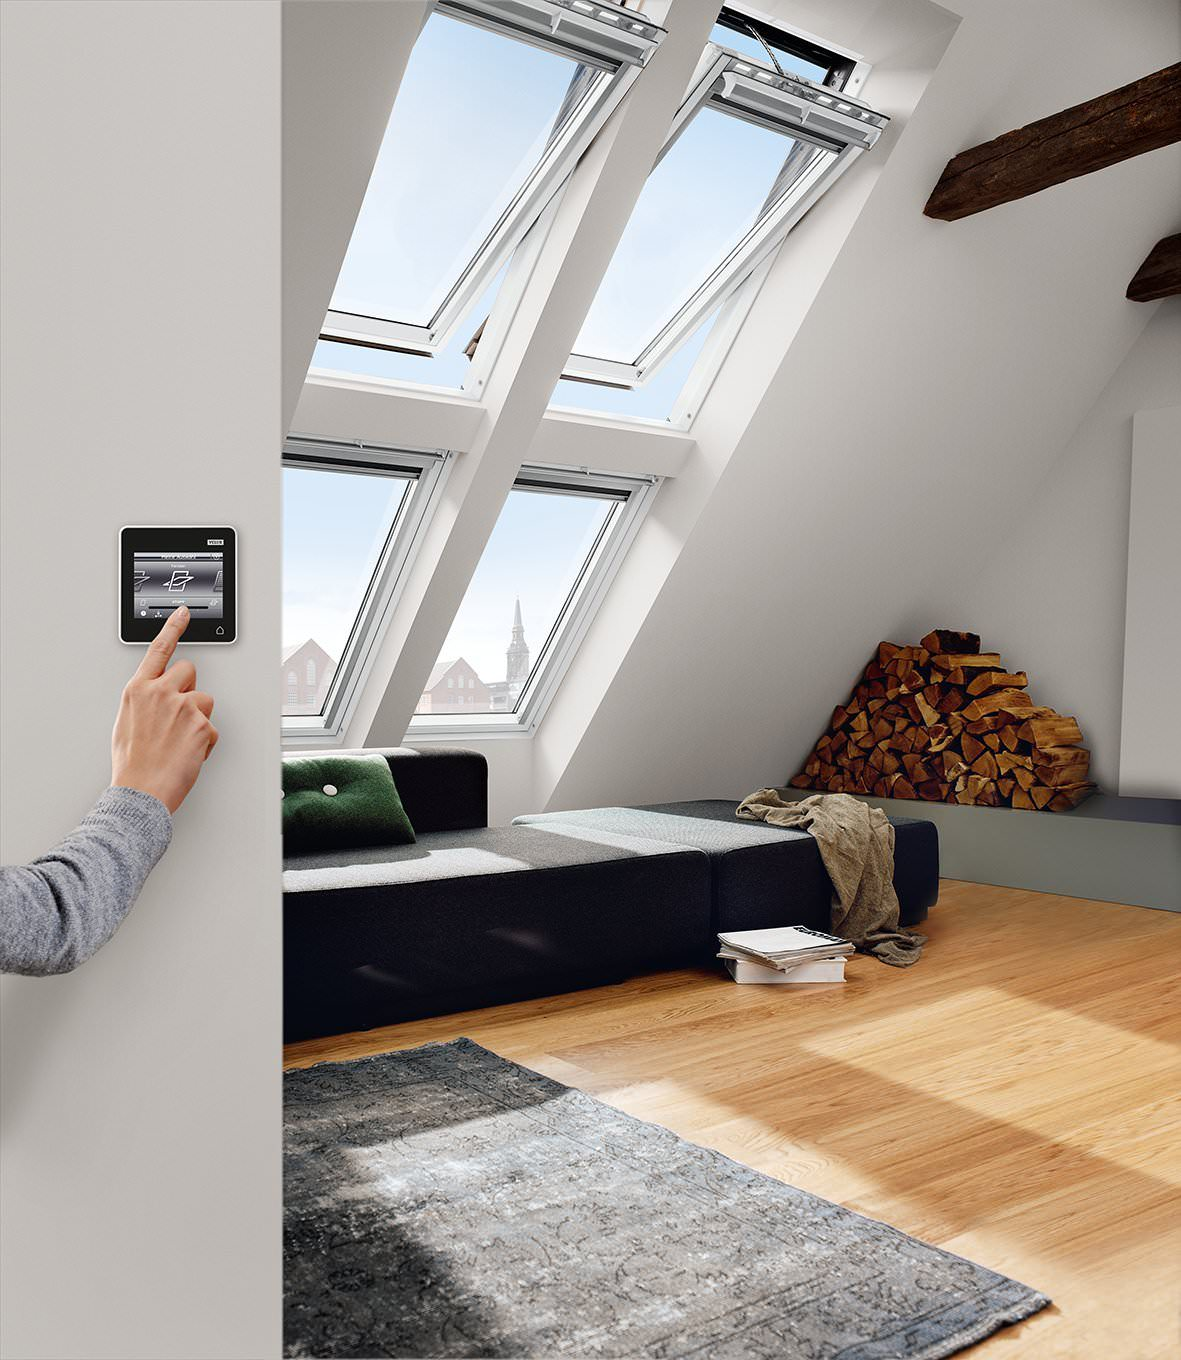 Velux dachfenster ggl 206621 holz integra elektrofenster - Innenfutter dachfenster ...